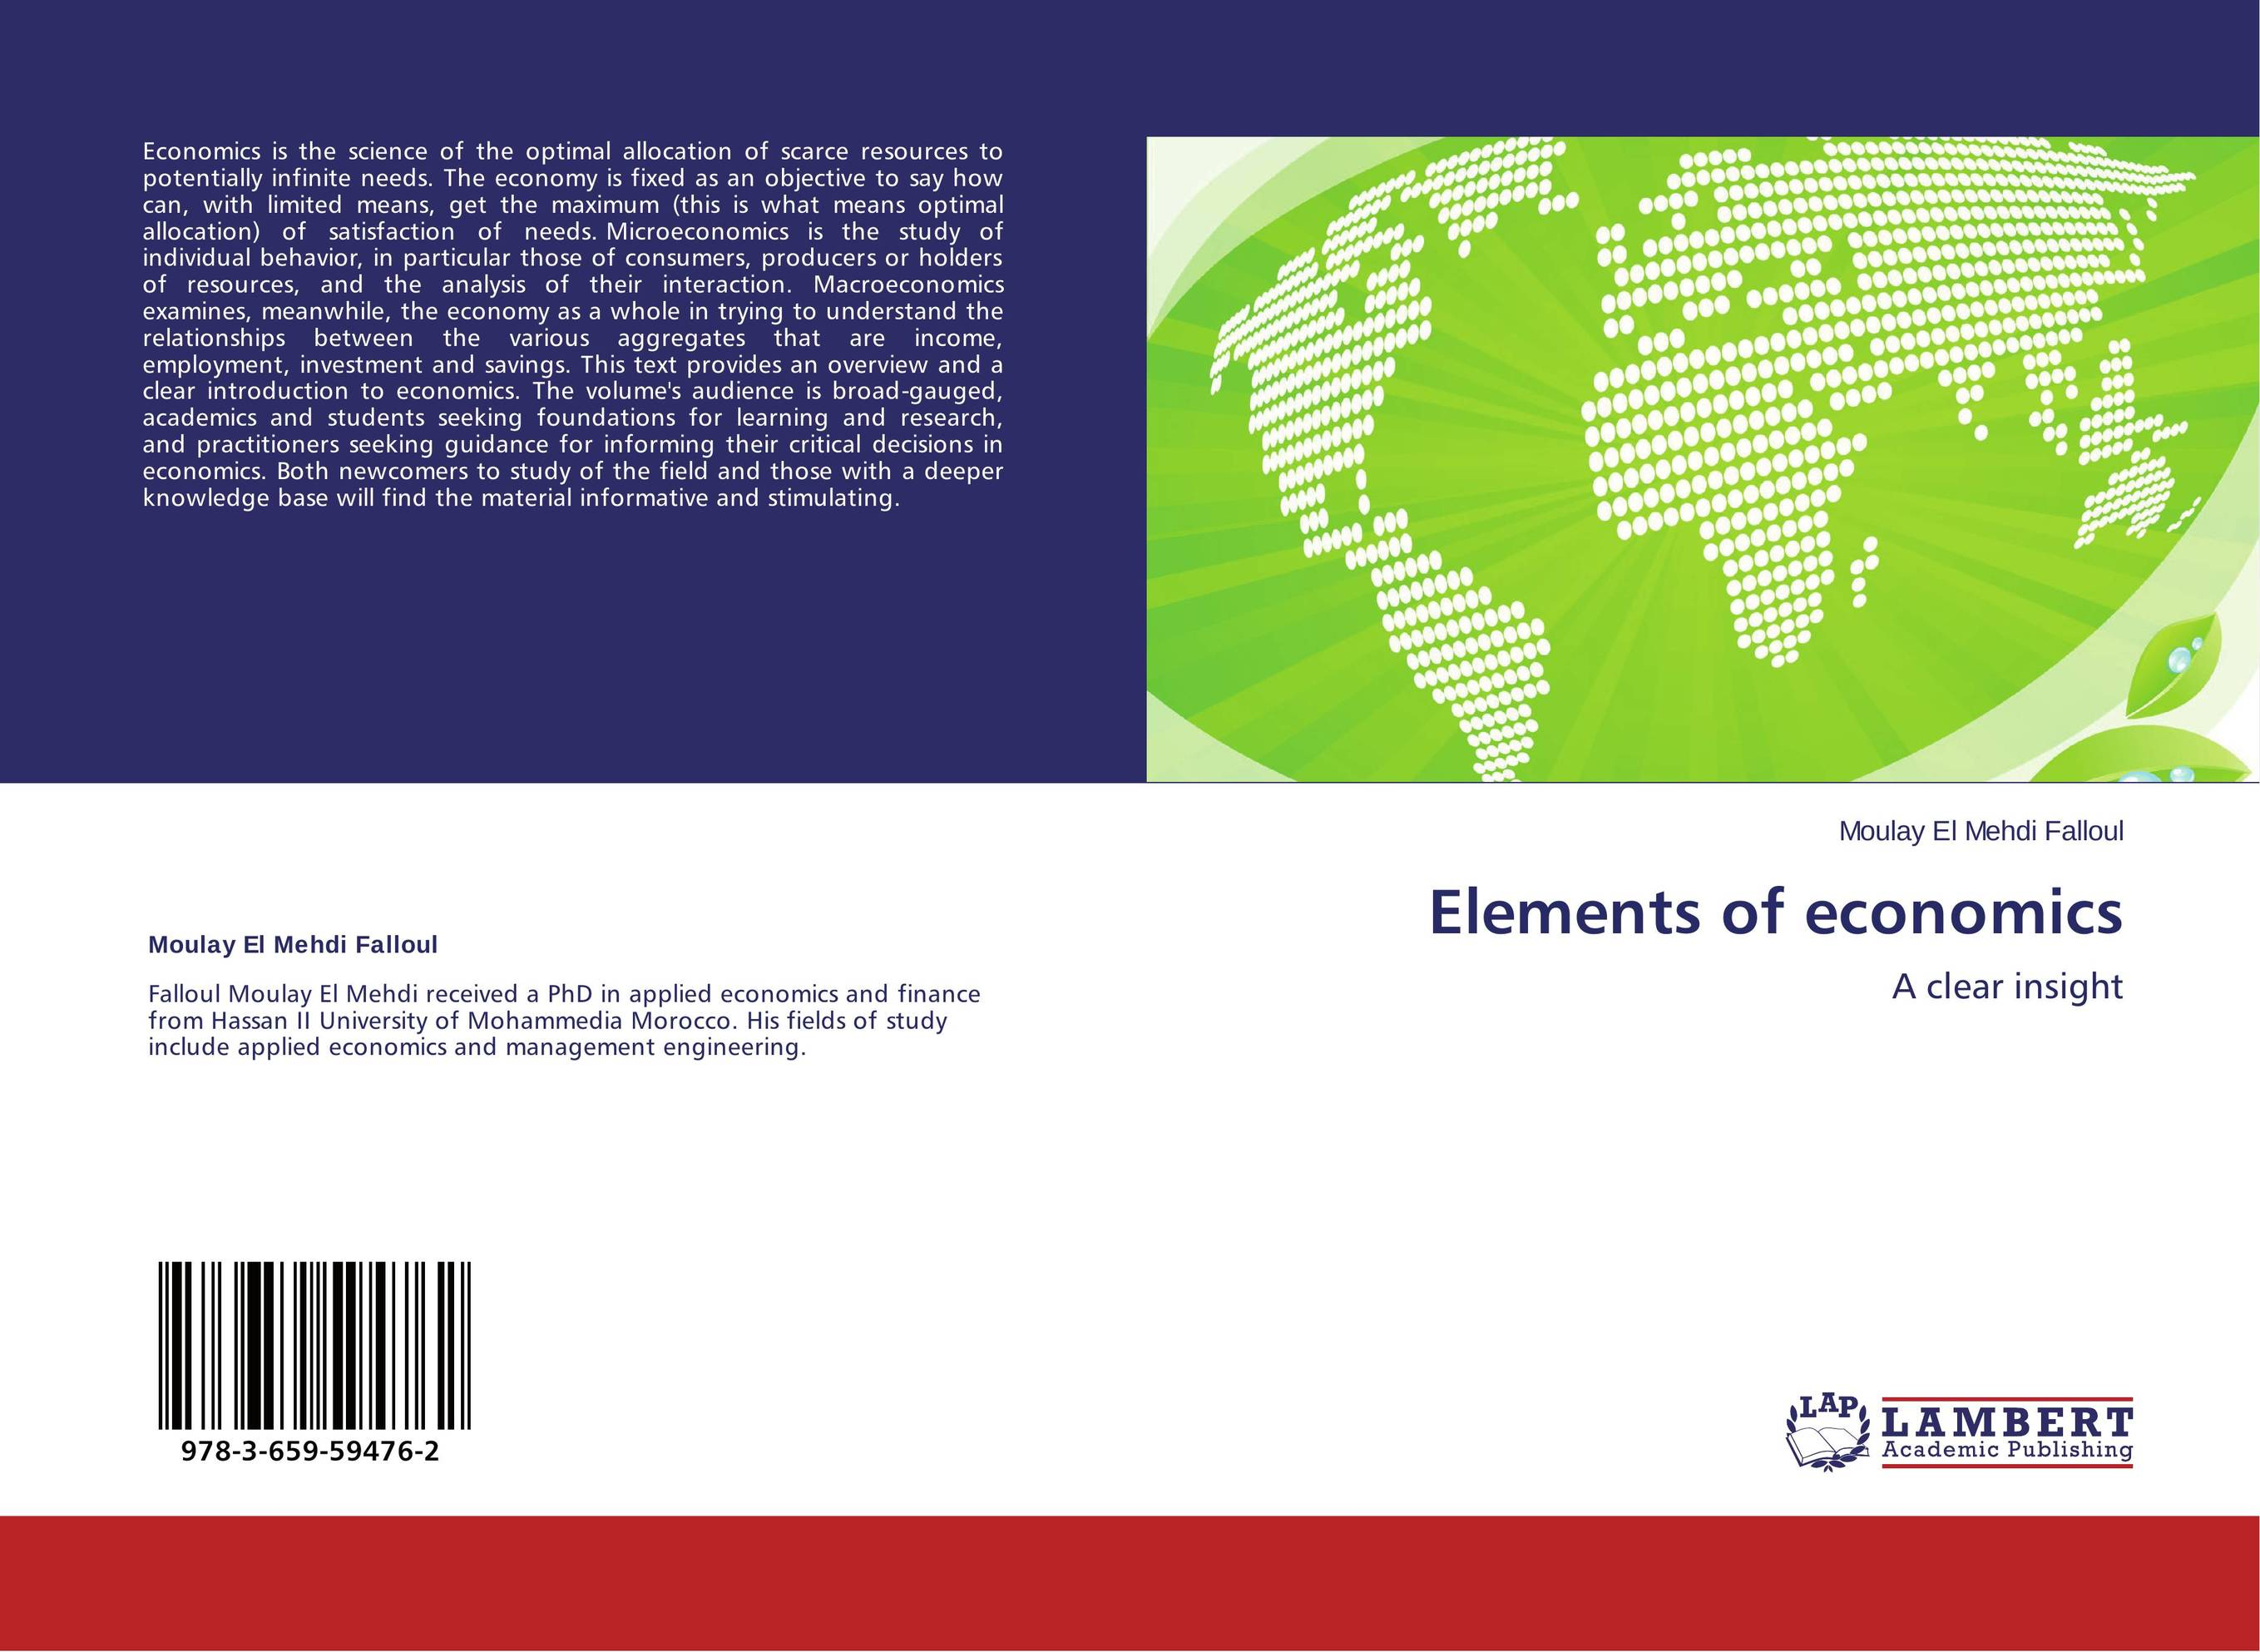 managerial economics is a normative science like psychology Managerial economics is a science which studies the economic aspects of behavior of the firm as an enterprise, and helps to allocate scarce resources to their normative approach in managerial economics has ethical considerations and involves value judgments based on philosophical, cultural.